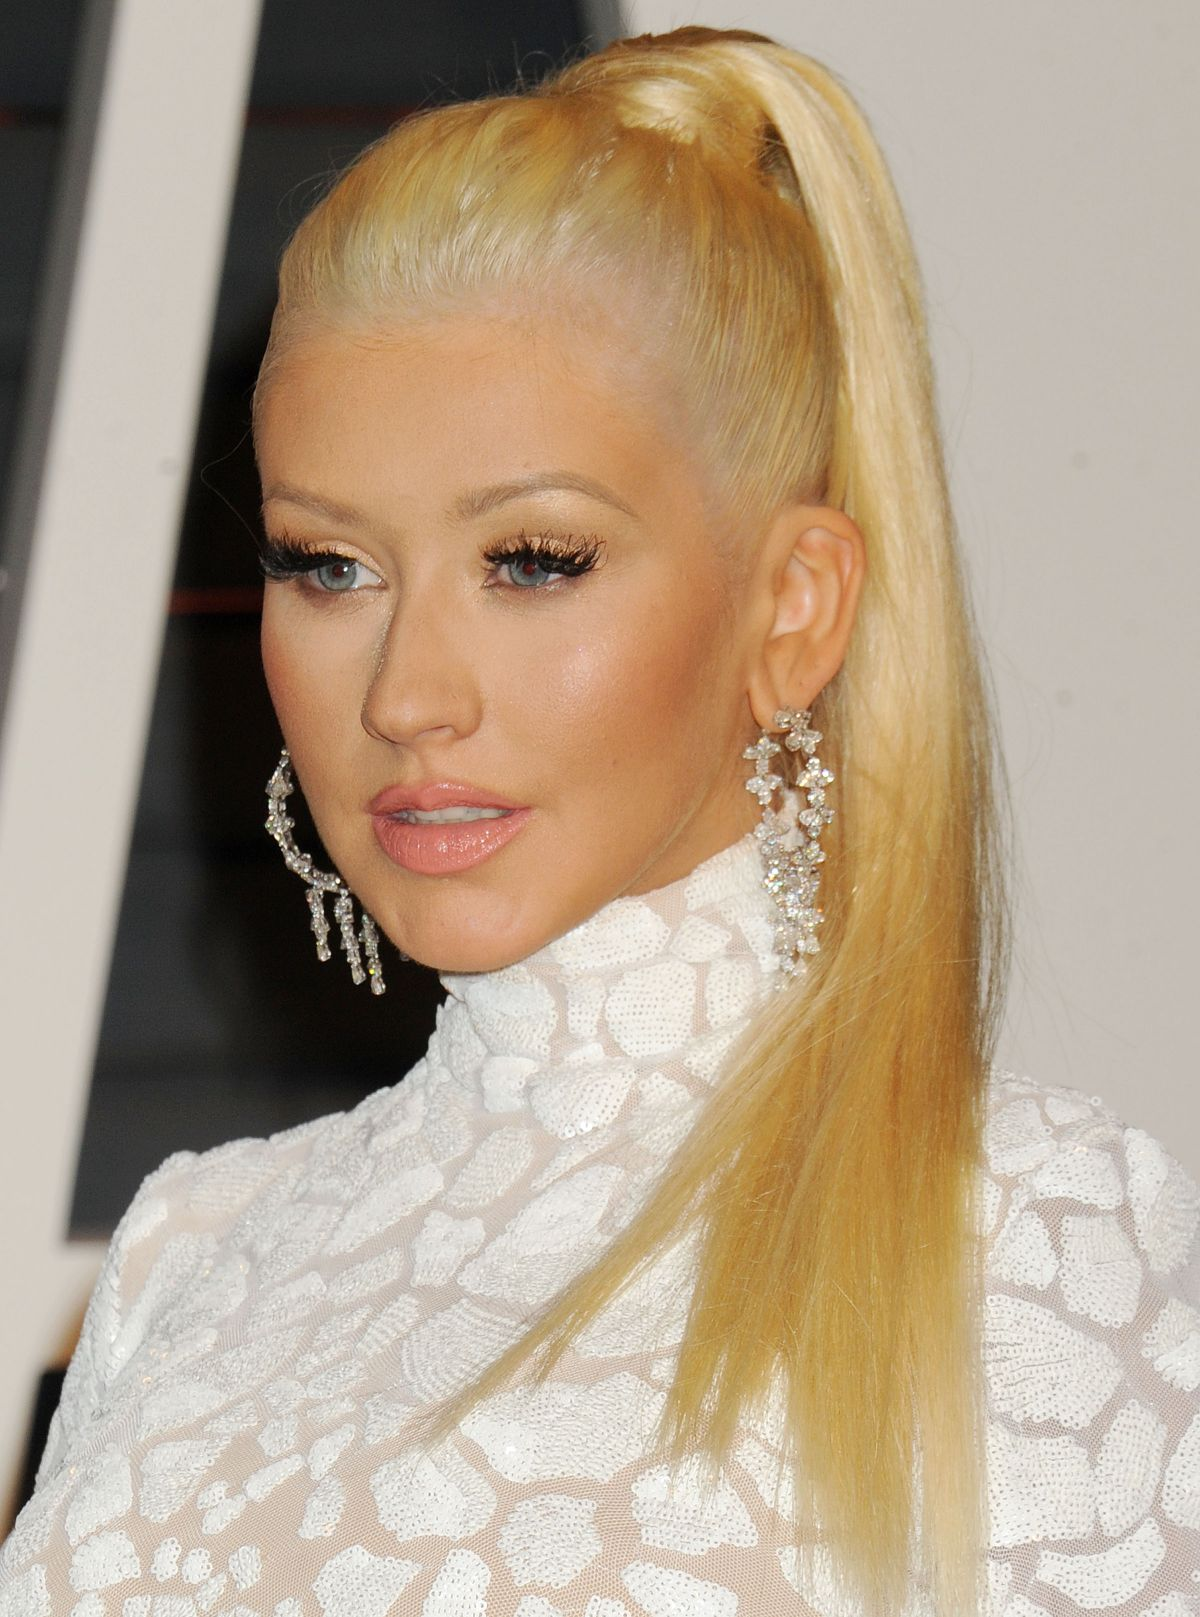 Christina Aguilera At 2015 Vanity Fair Oscar Party - Celebzz - Celebzz